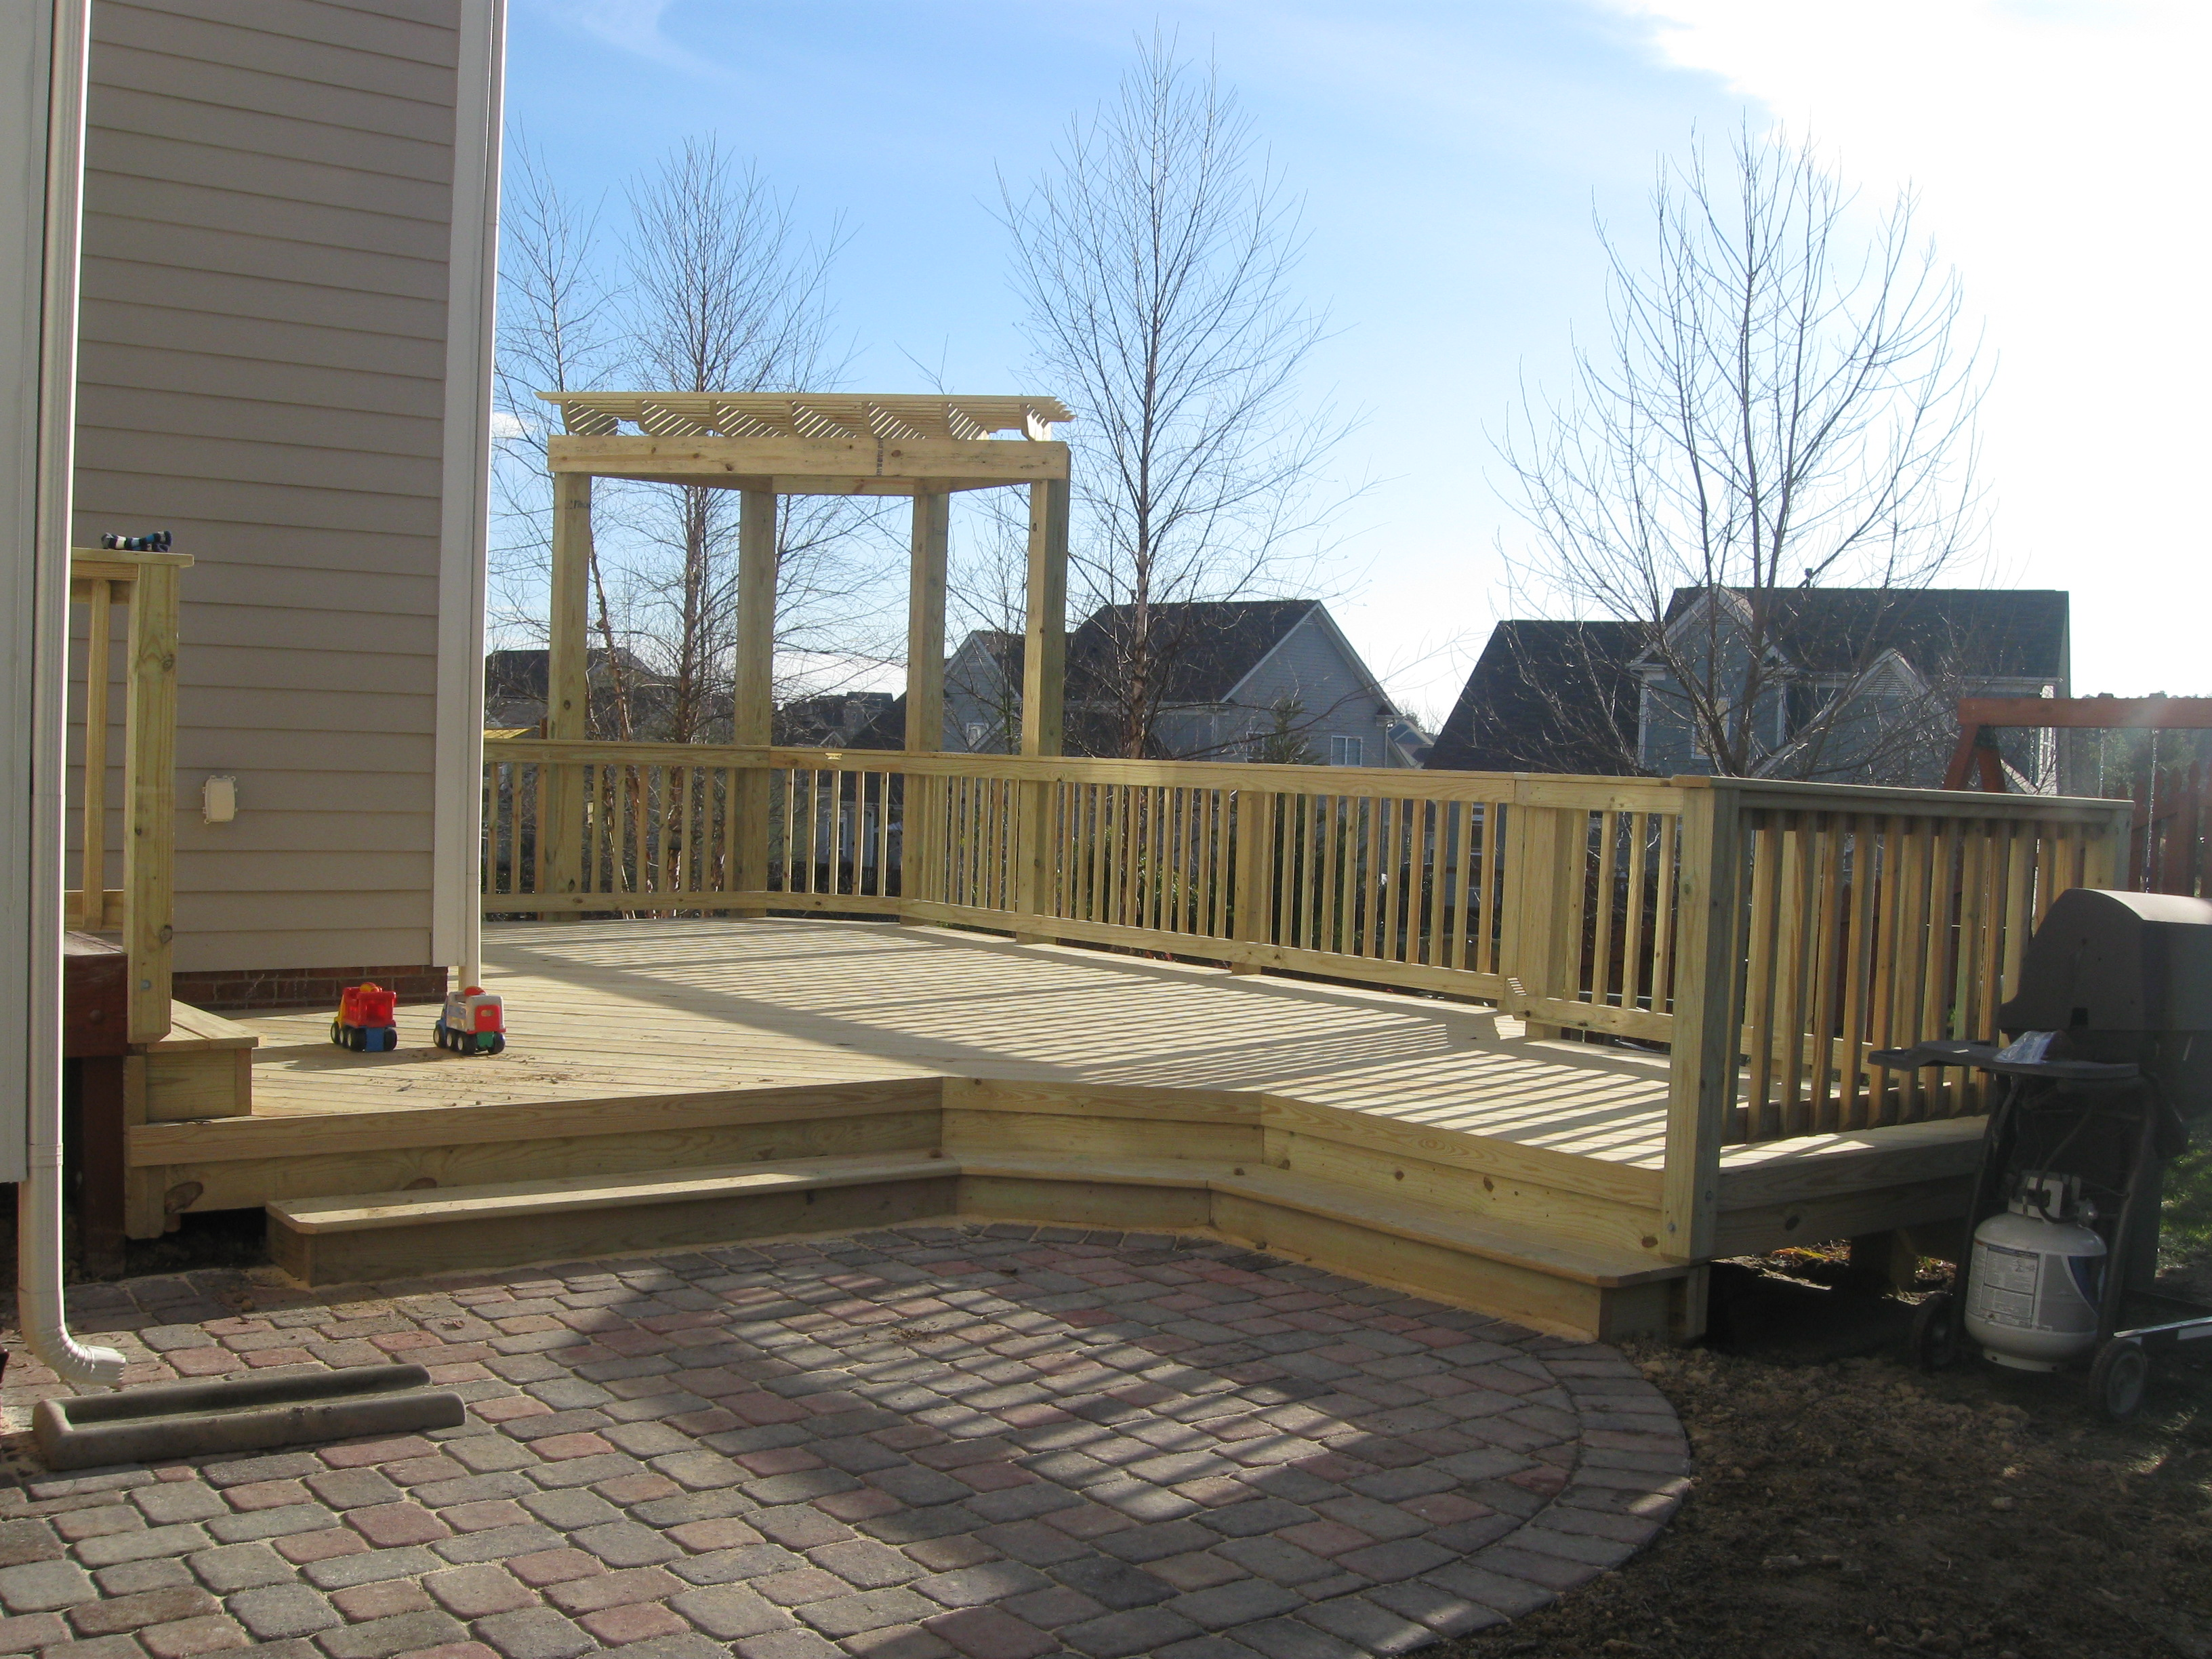 paver-patio-with-deck-wide-steps.jpg